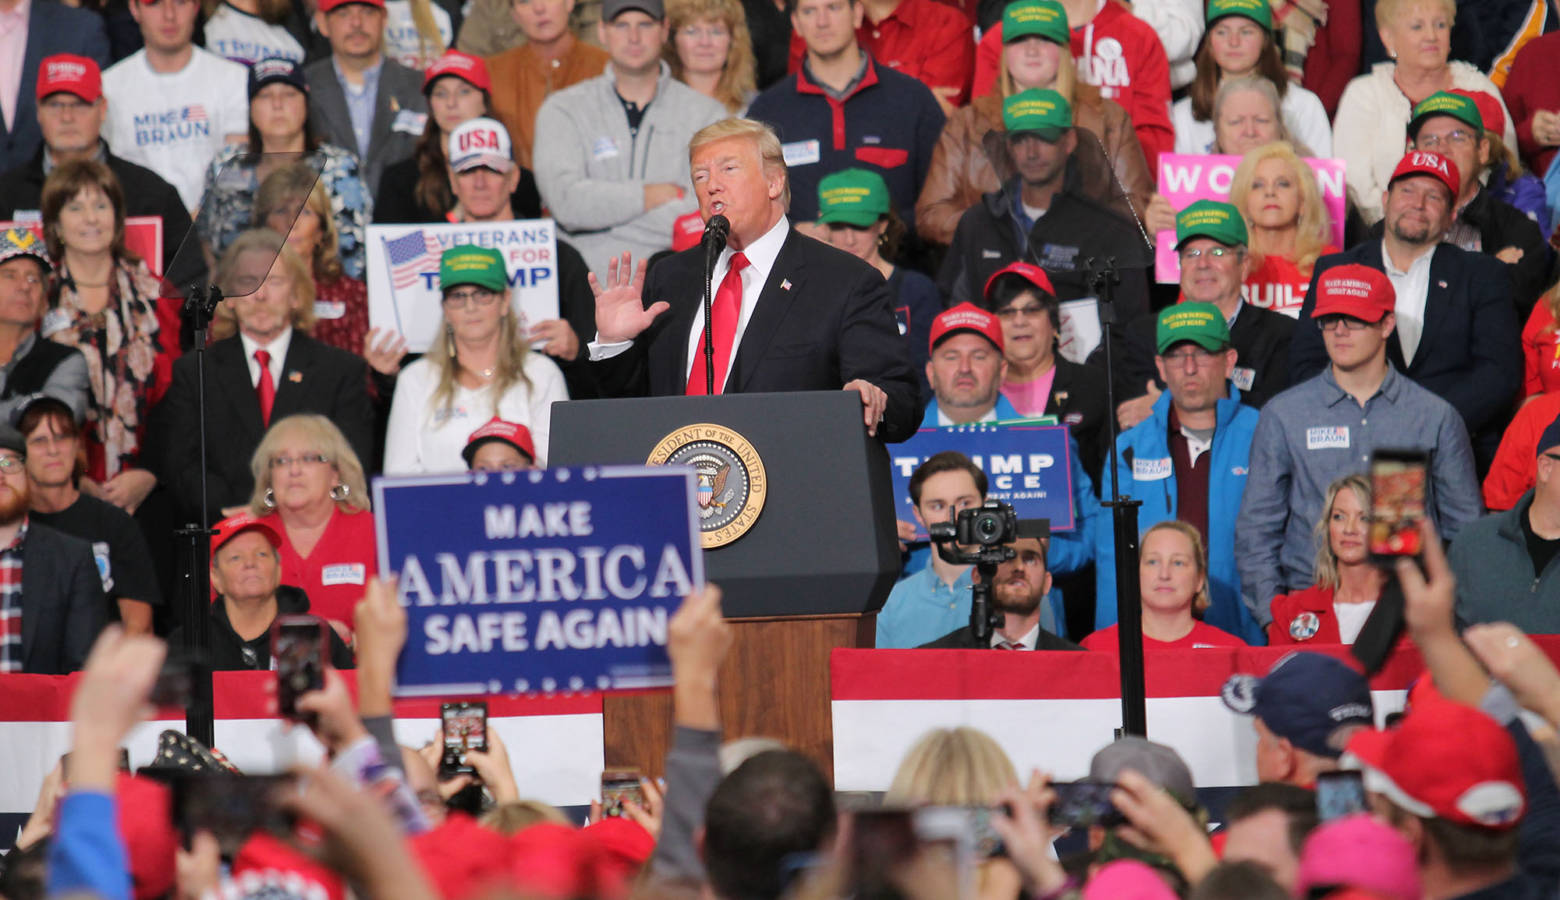 More Hoosiers approve of President Trump's job performance than disapprove, according to the latest edition of Ball State's Hoosier Survey. (FILE PHOTO: Lauren Chapman/IPB News)